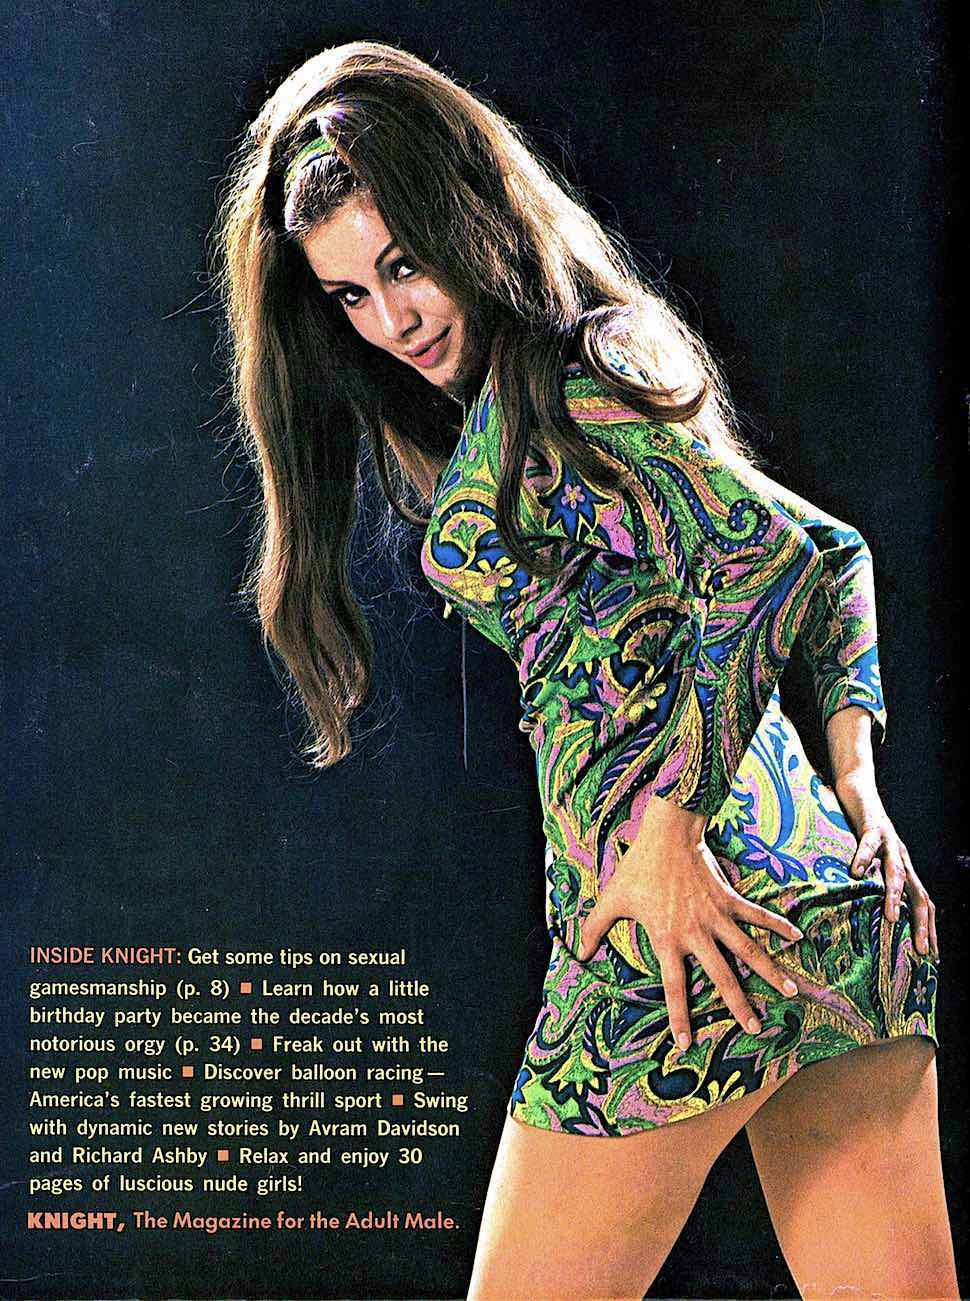 a psychedelic swinger woman from a 1967 men's magazine, Knight Magazine